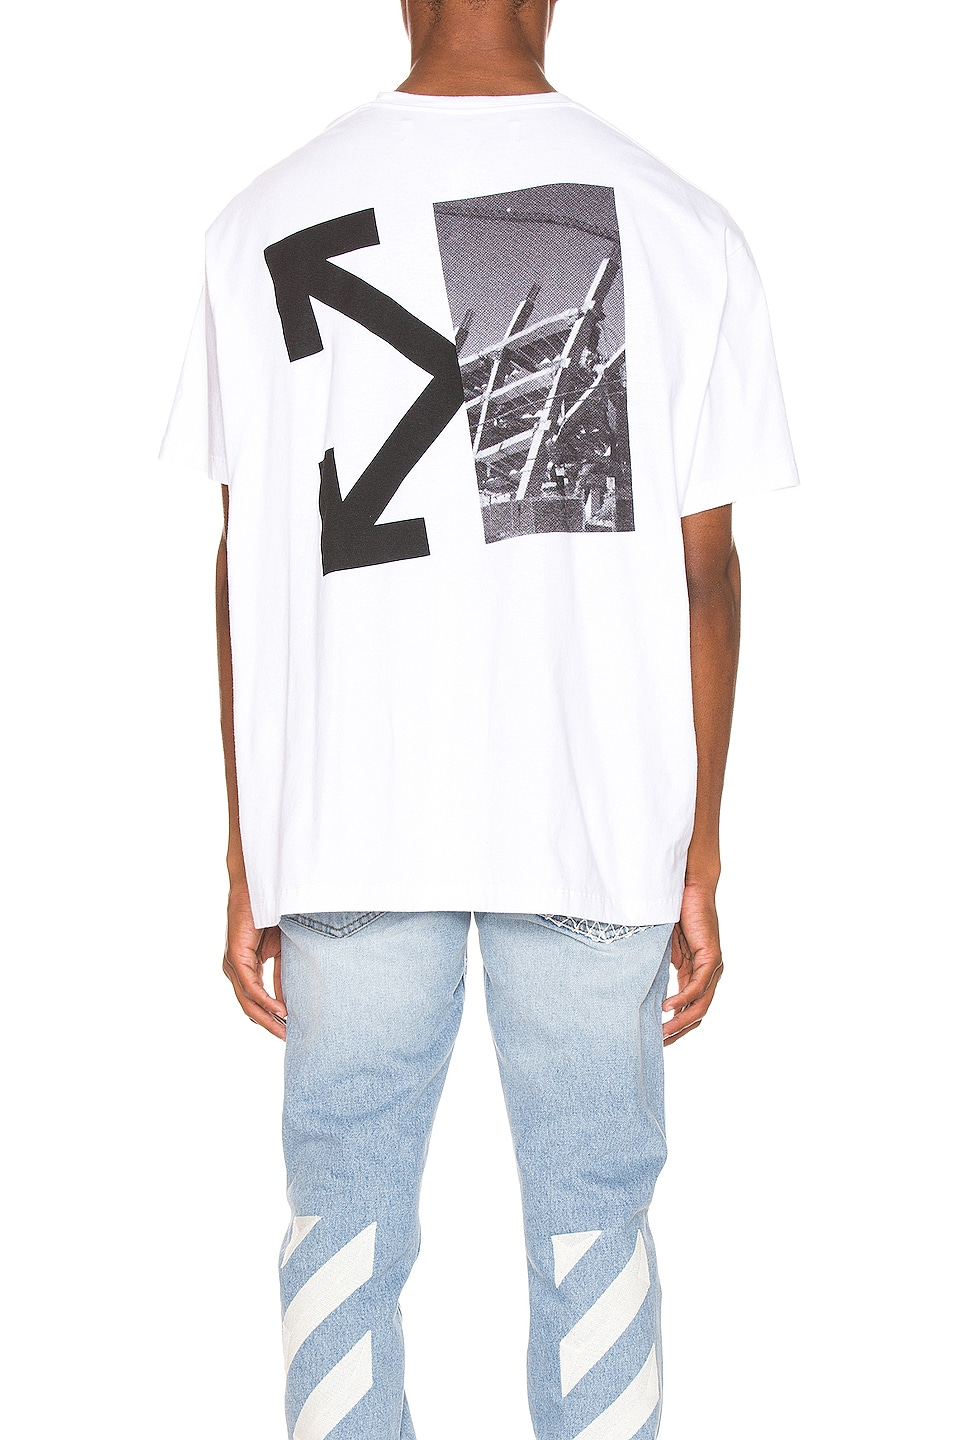 OFF-WHITE Splitted Arrows Oversized Tee White & Black durable service